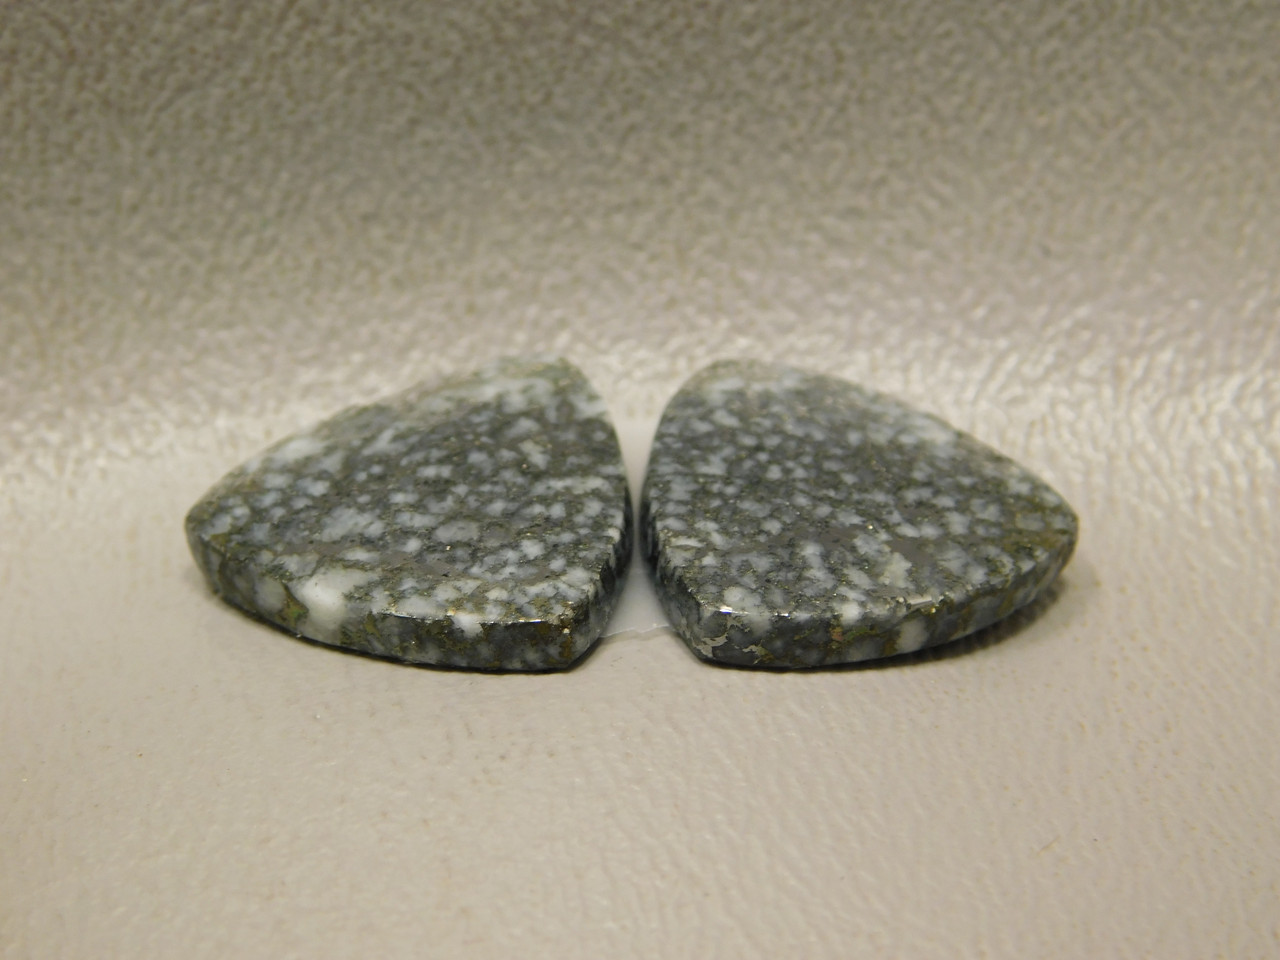 Mohawkite Stone Matched Pair For Earrings Cabochons Gold Silver #7